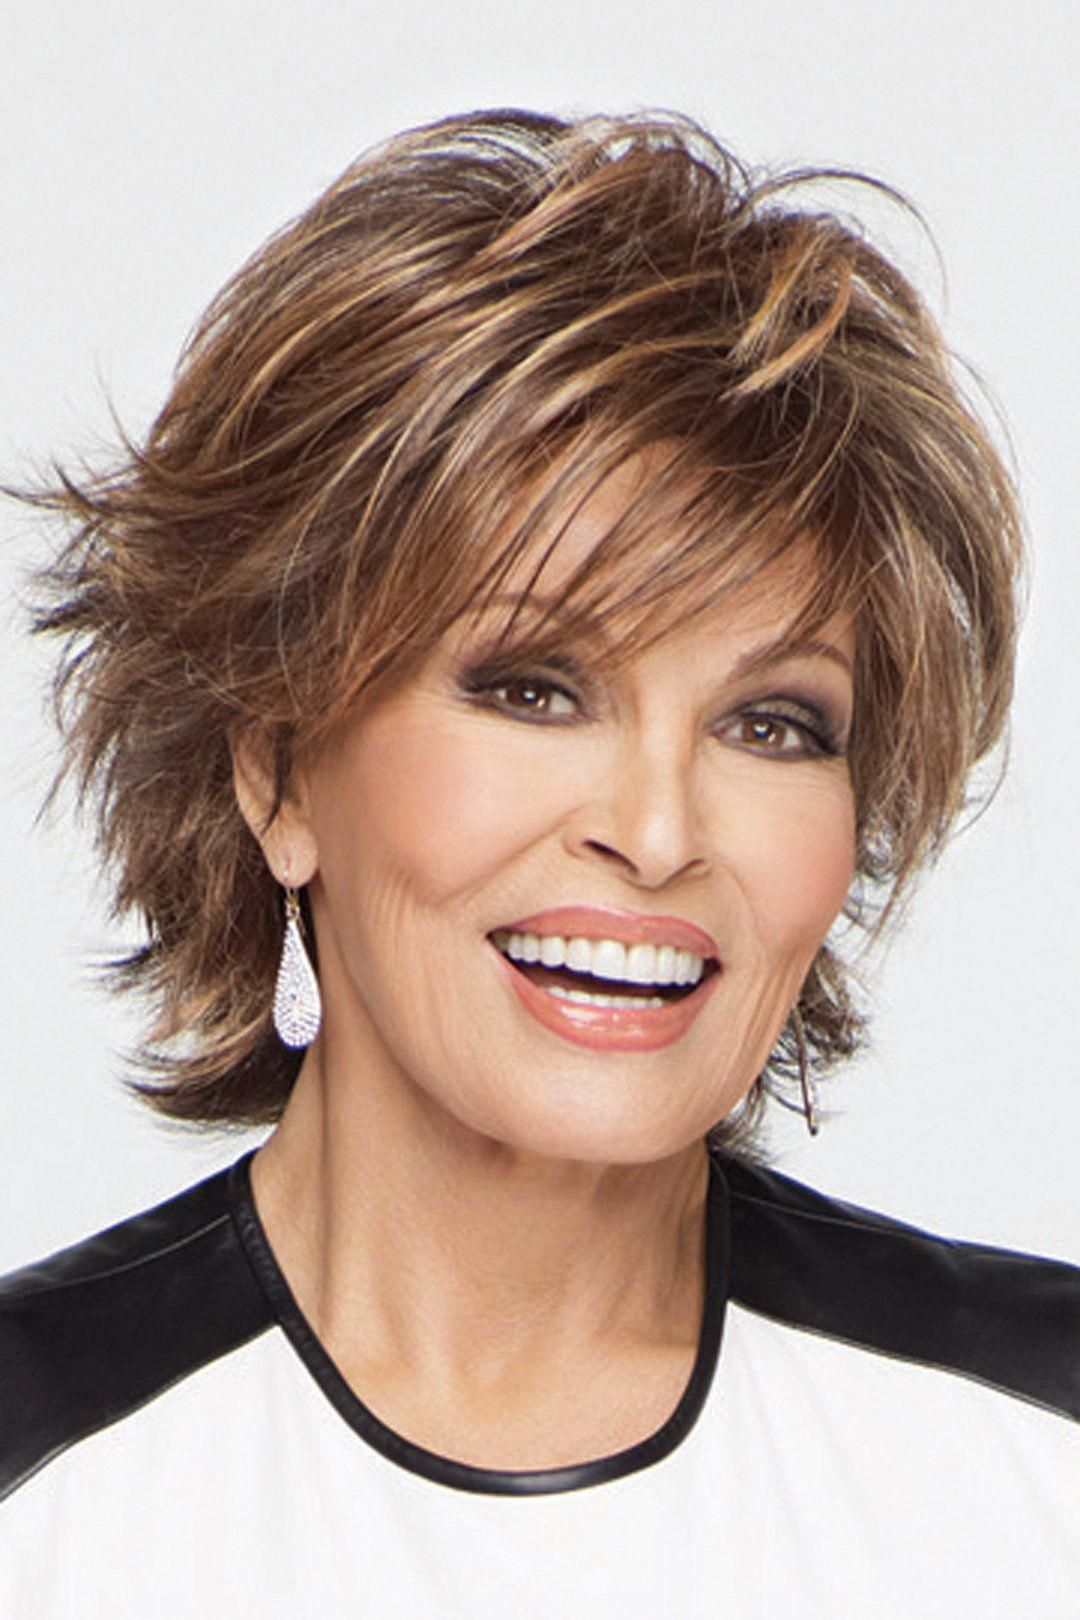 raquel welch wigs : trend setter - front 2 #shorthairstyles